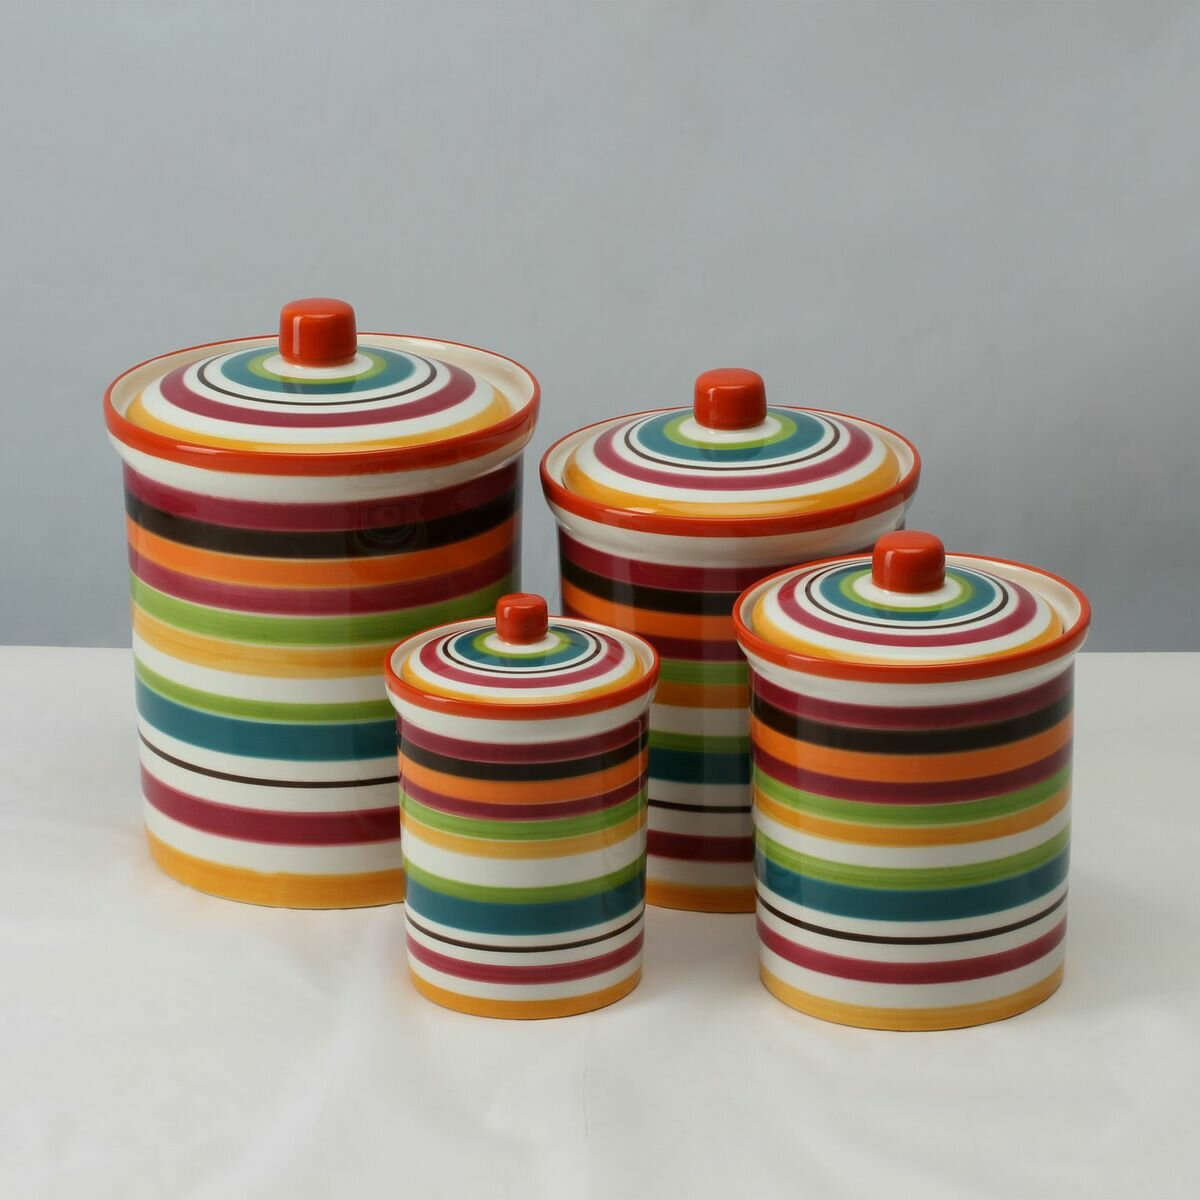 28 Colored Kitchen Canisters Colored Glass Kitchen Canisters Foter Bianca Bead 3 Piece